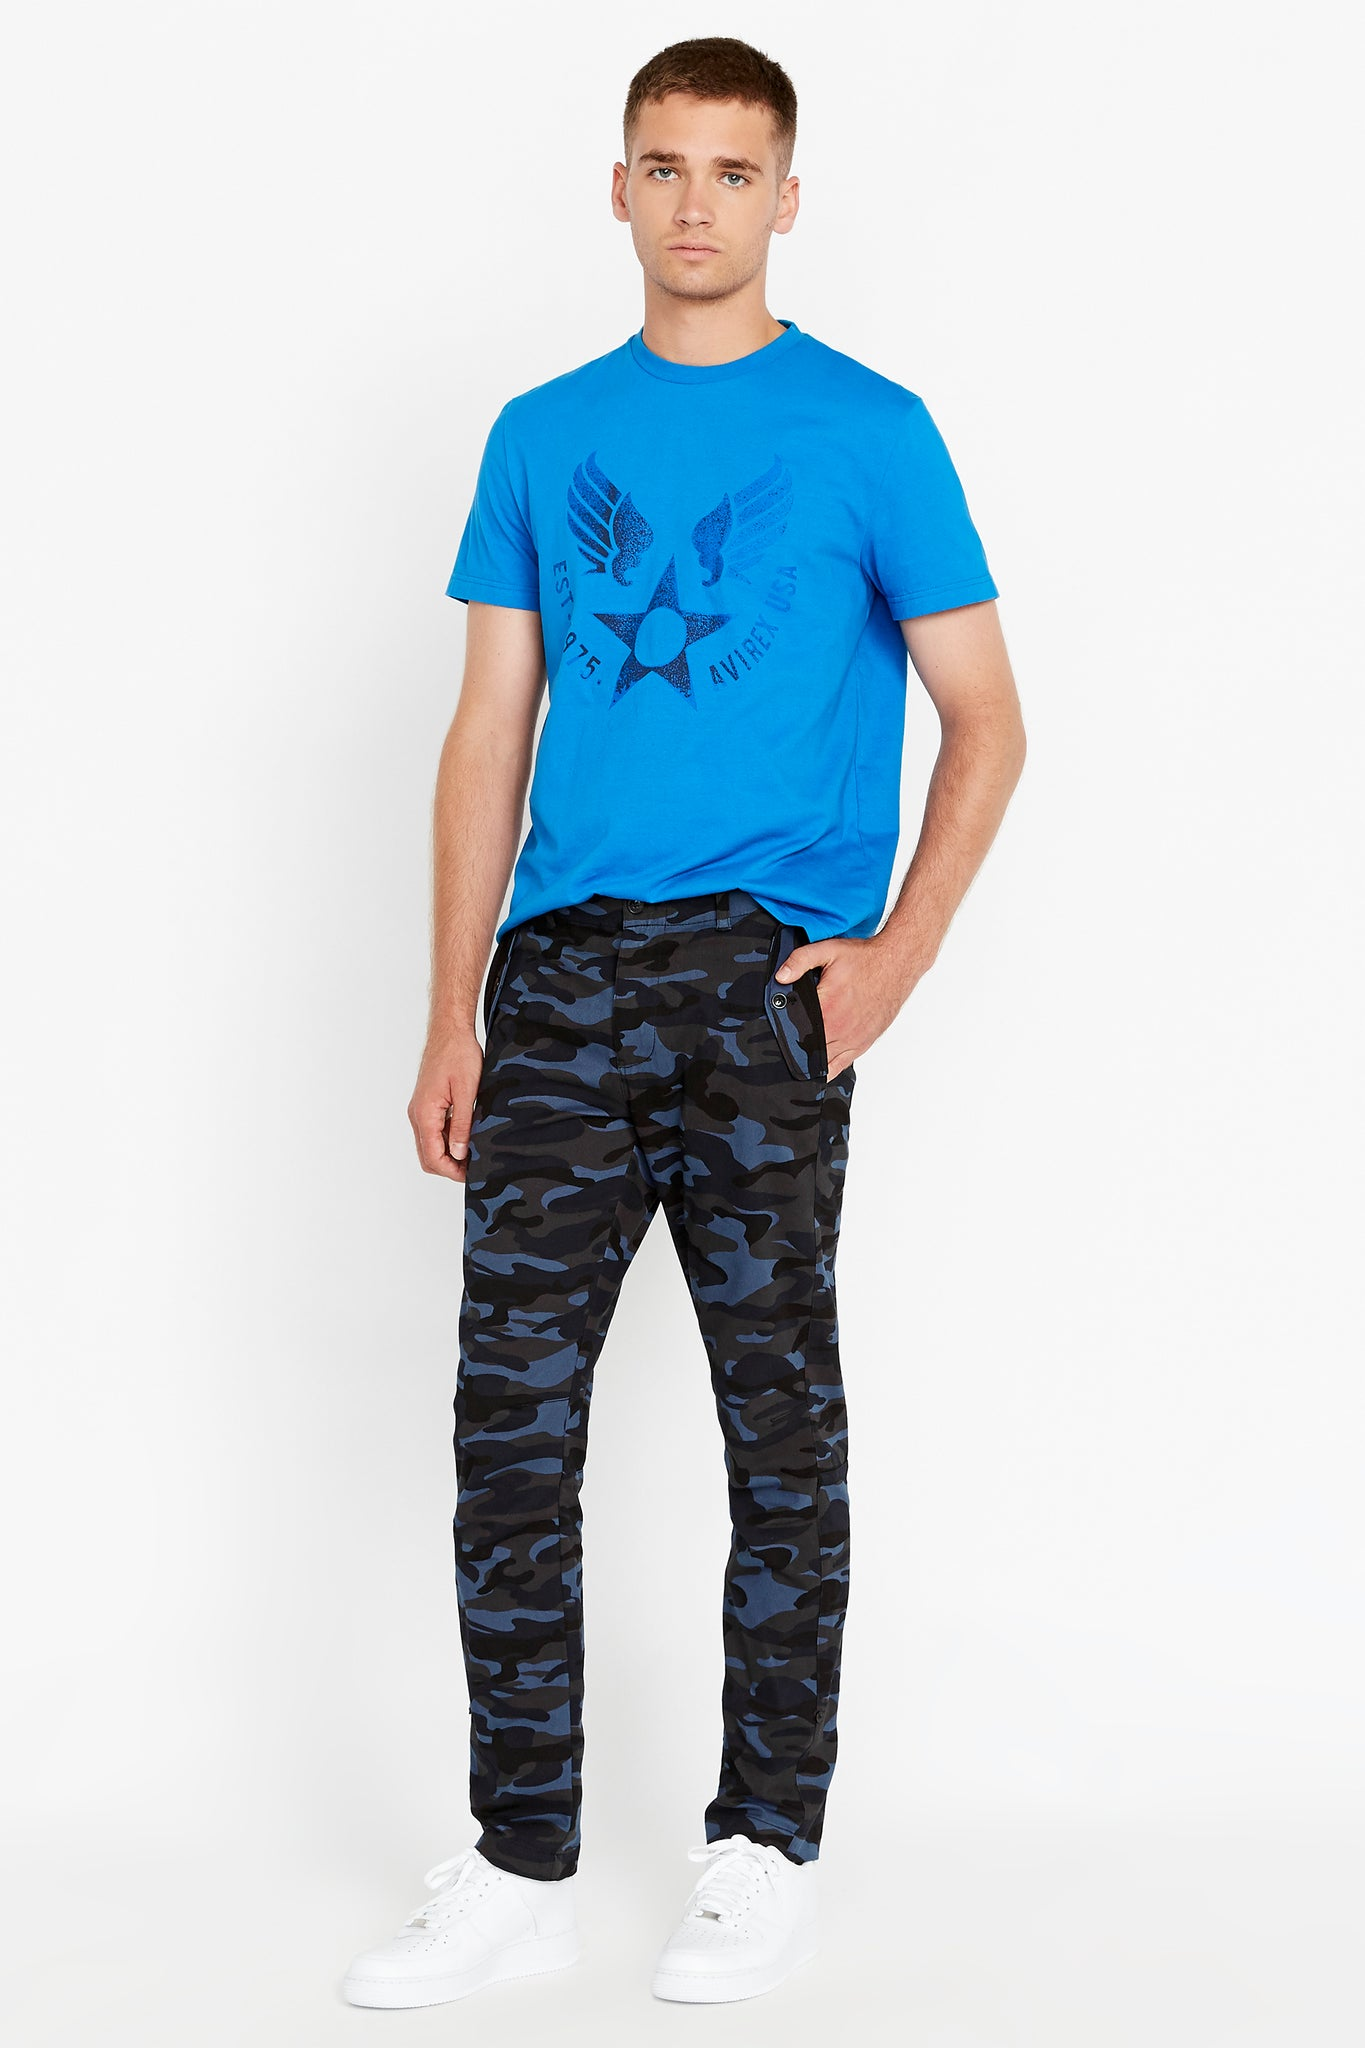 Full view of men wearing navy camo print pants with two pockets on the side and blue short sleeve crew neck T-shirt